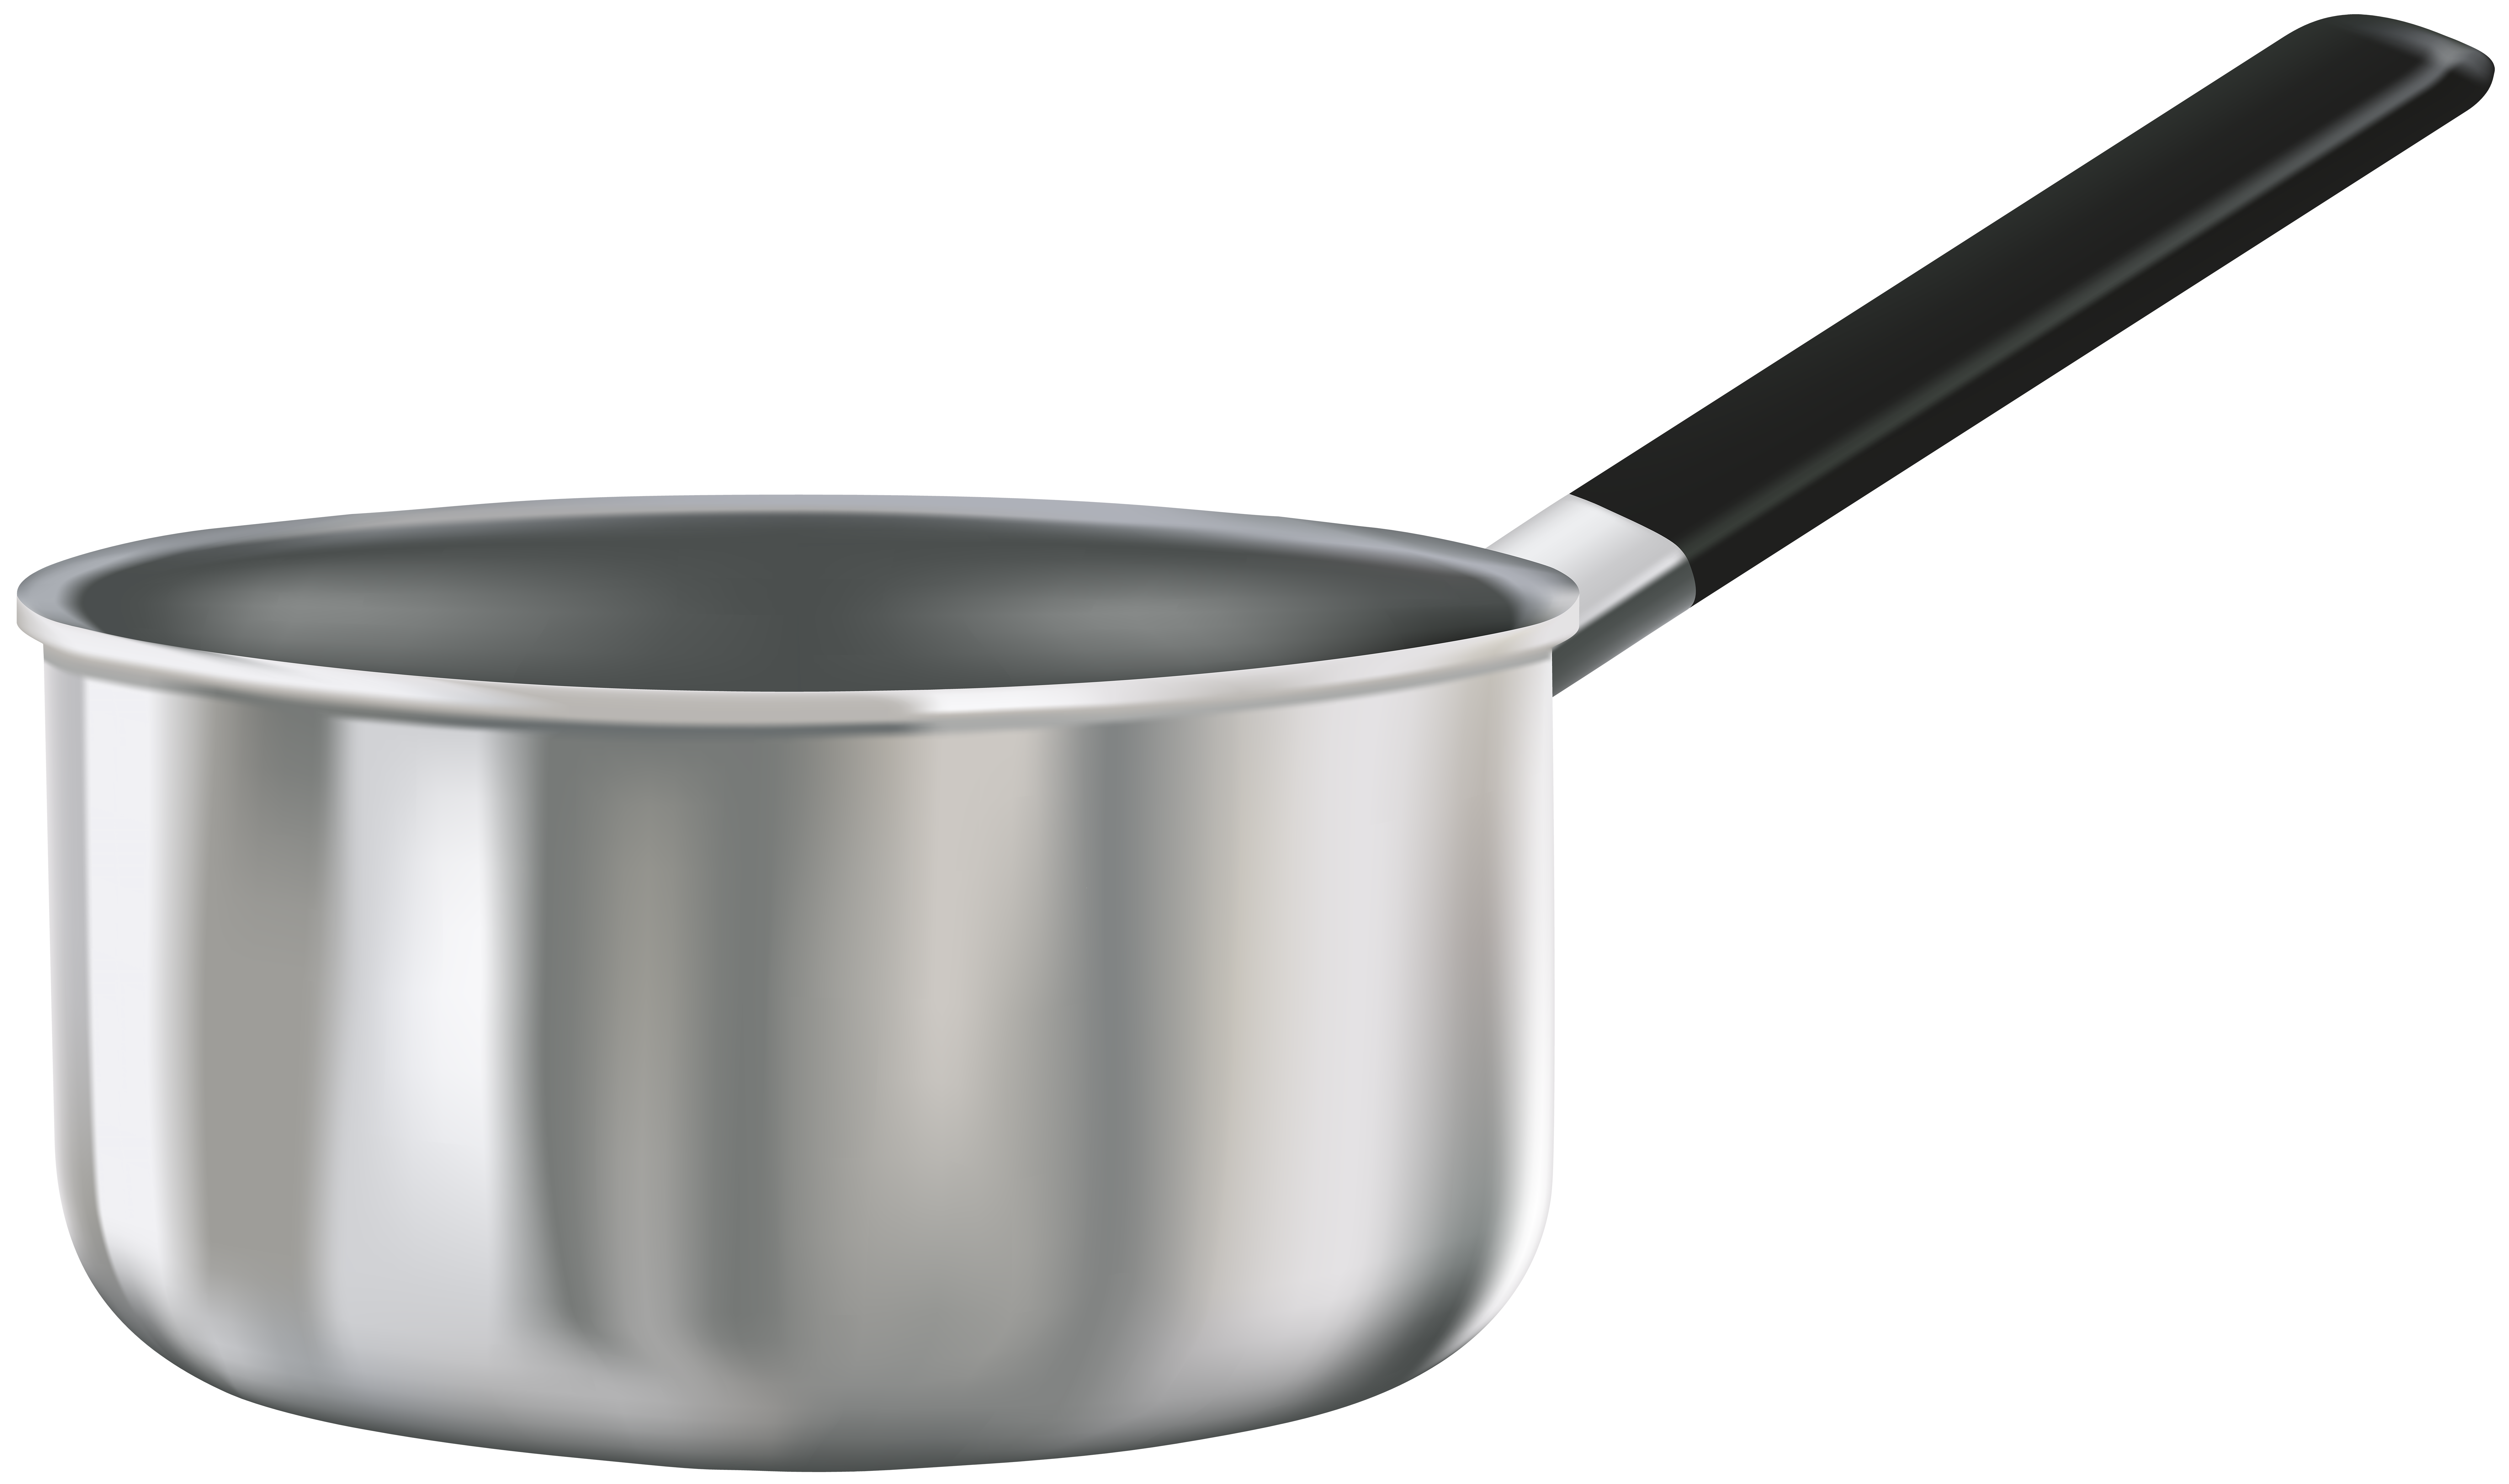 Saucepan clipart graphic freeuse Saucepan clip art clipart images gallery for free download ... graphic freeuse